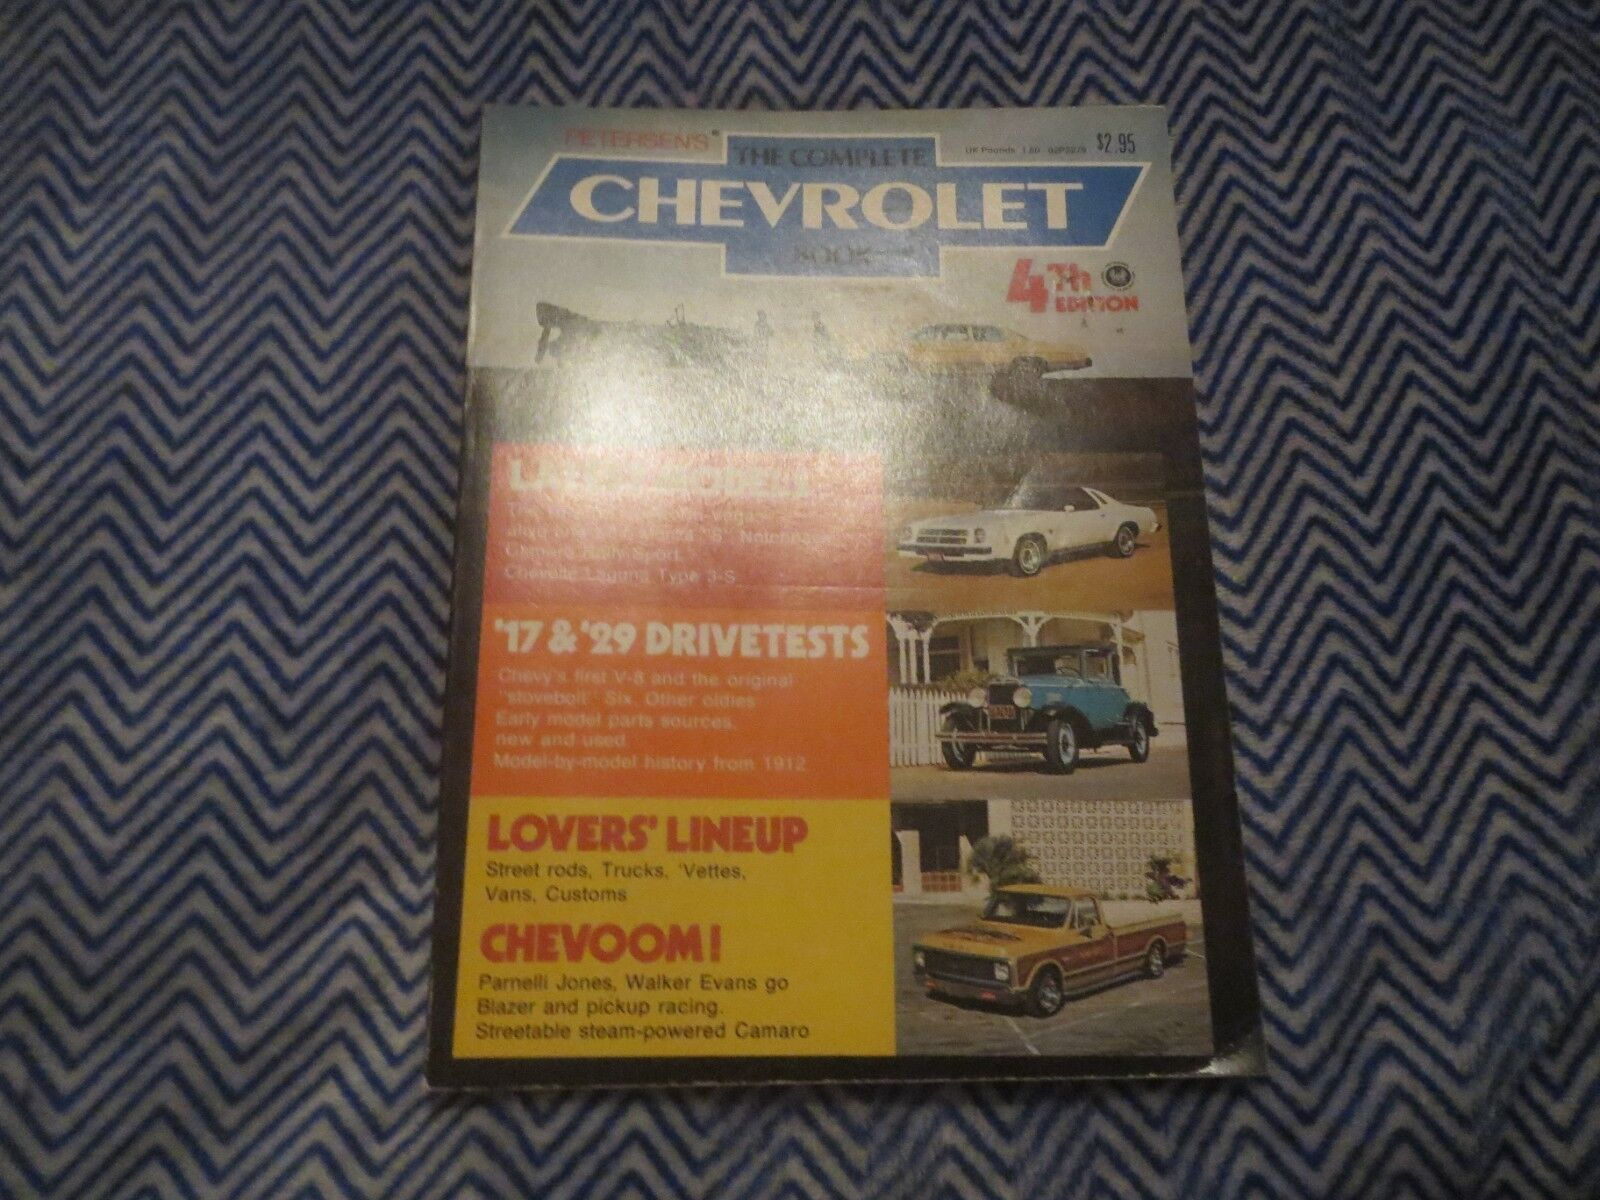 1975 PETERSENS THE COMPLETE CHEVROLET BOOK LATEST MODELS DRIVE TESTS AND MORE!